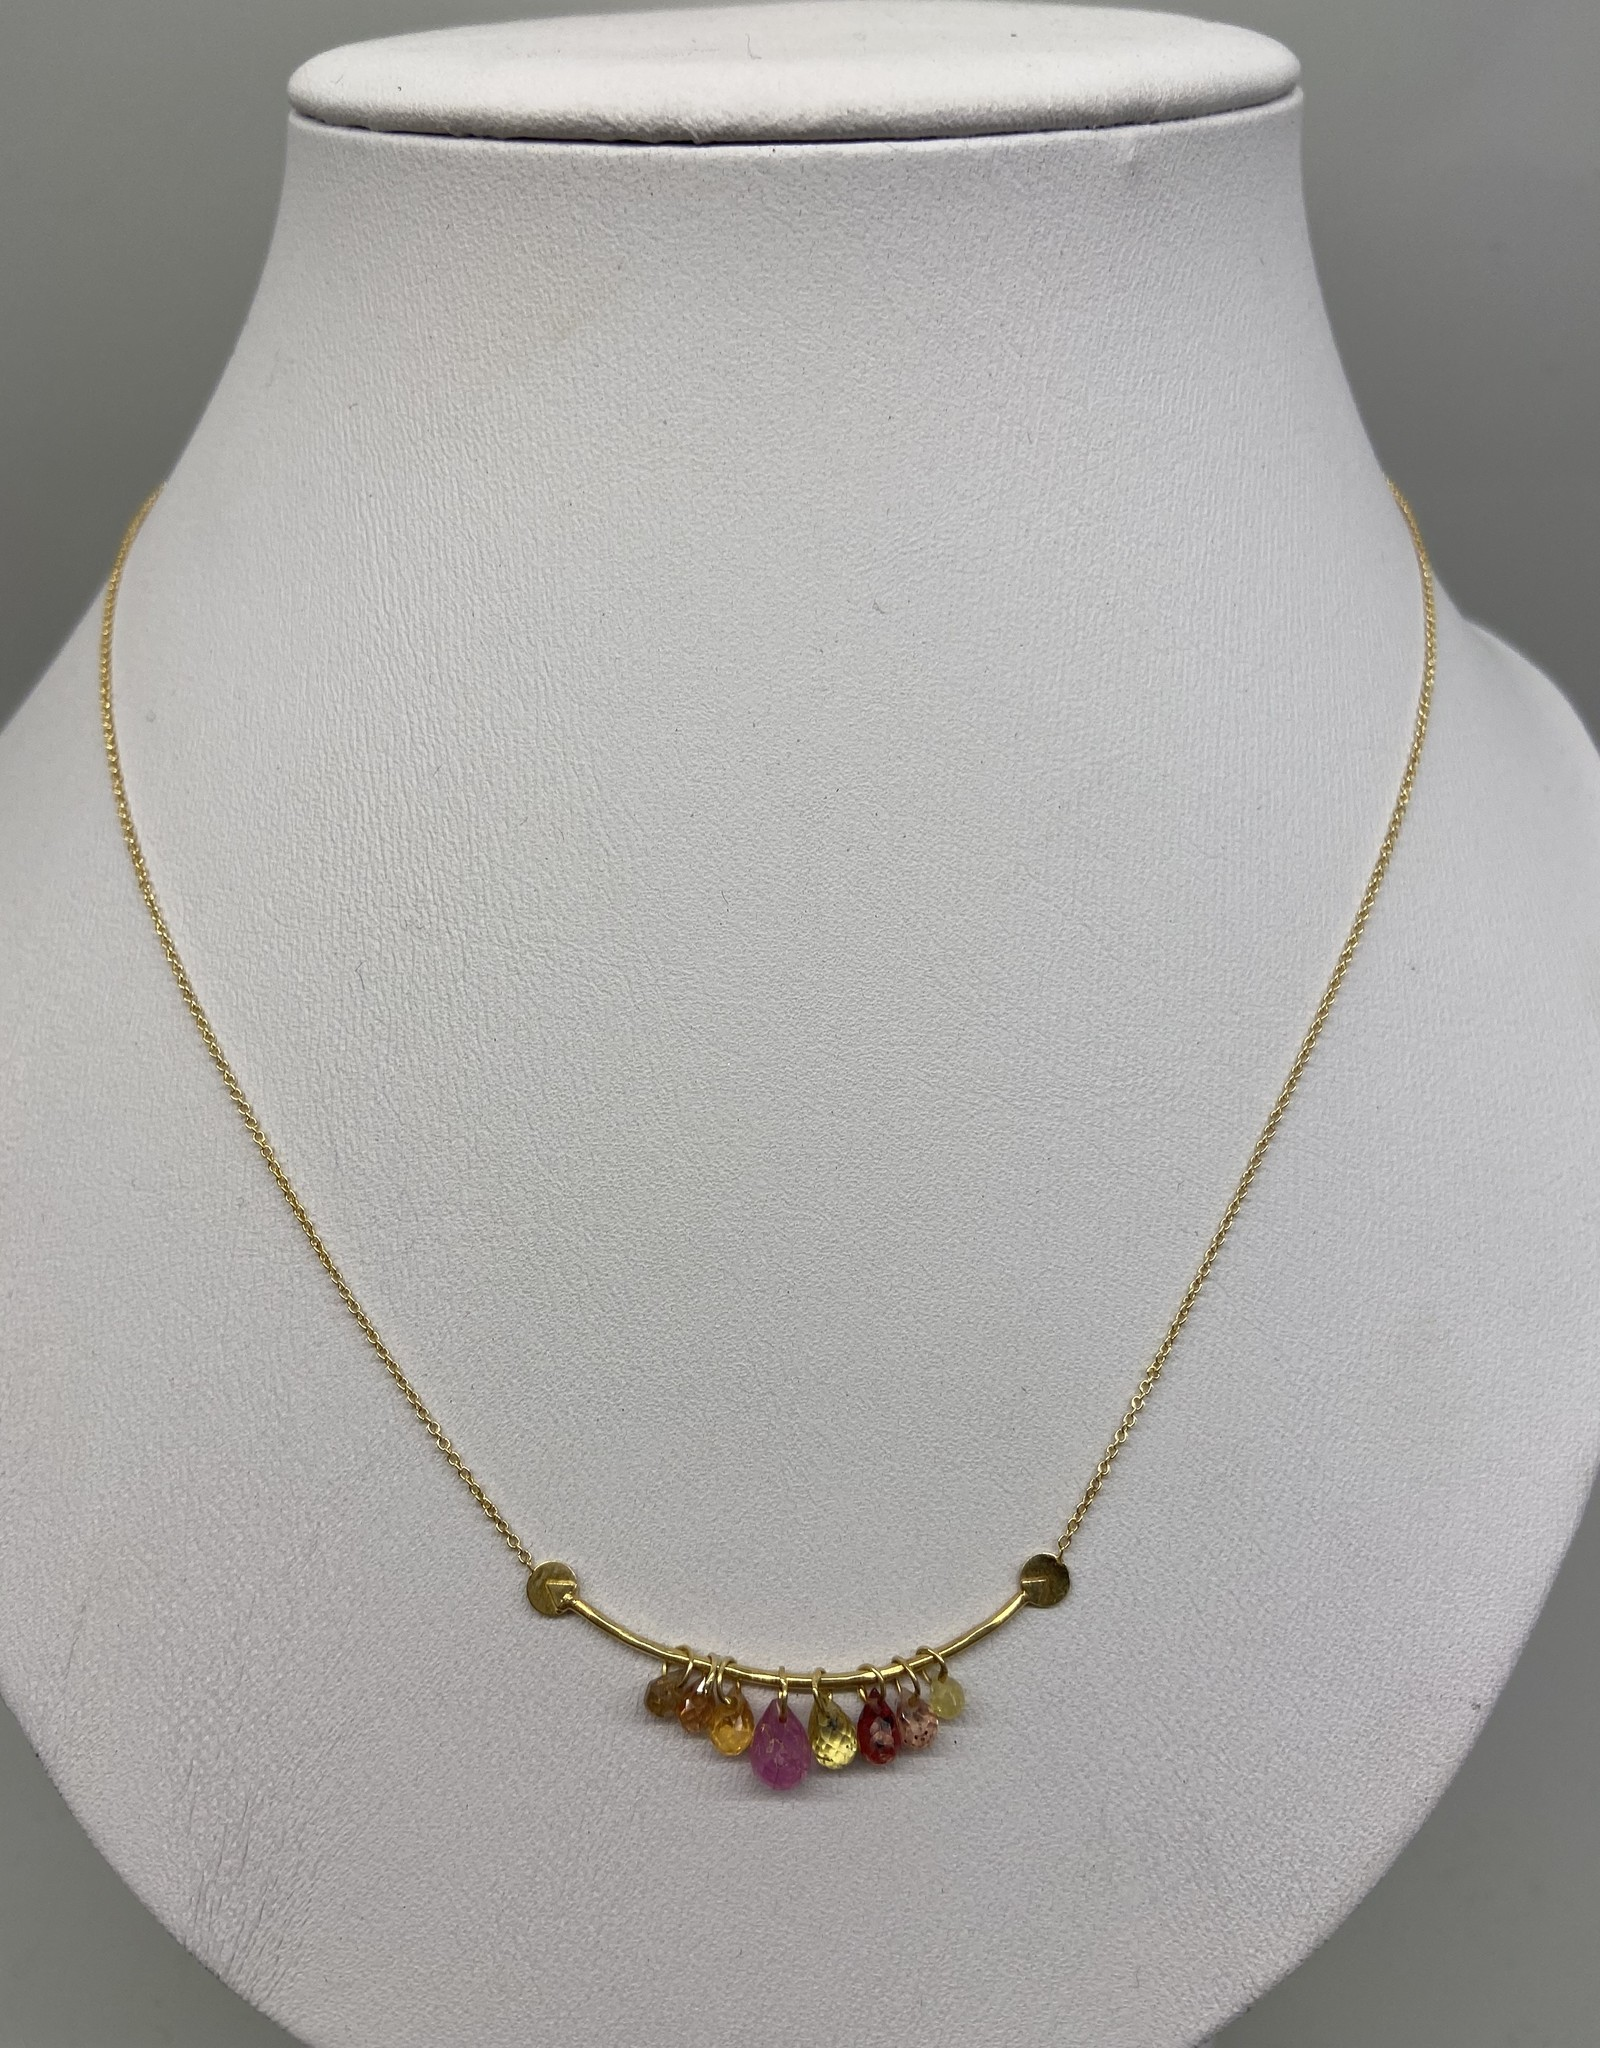 5 Octobre 5 Octobre Necklace Erisa pink tourmaline